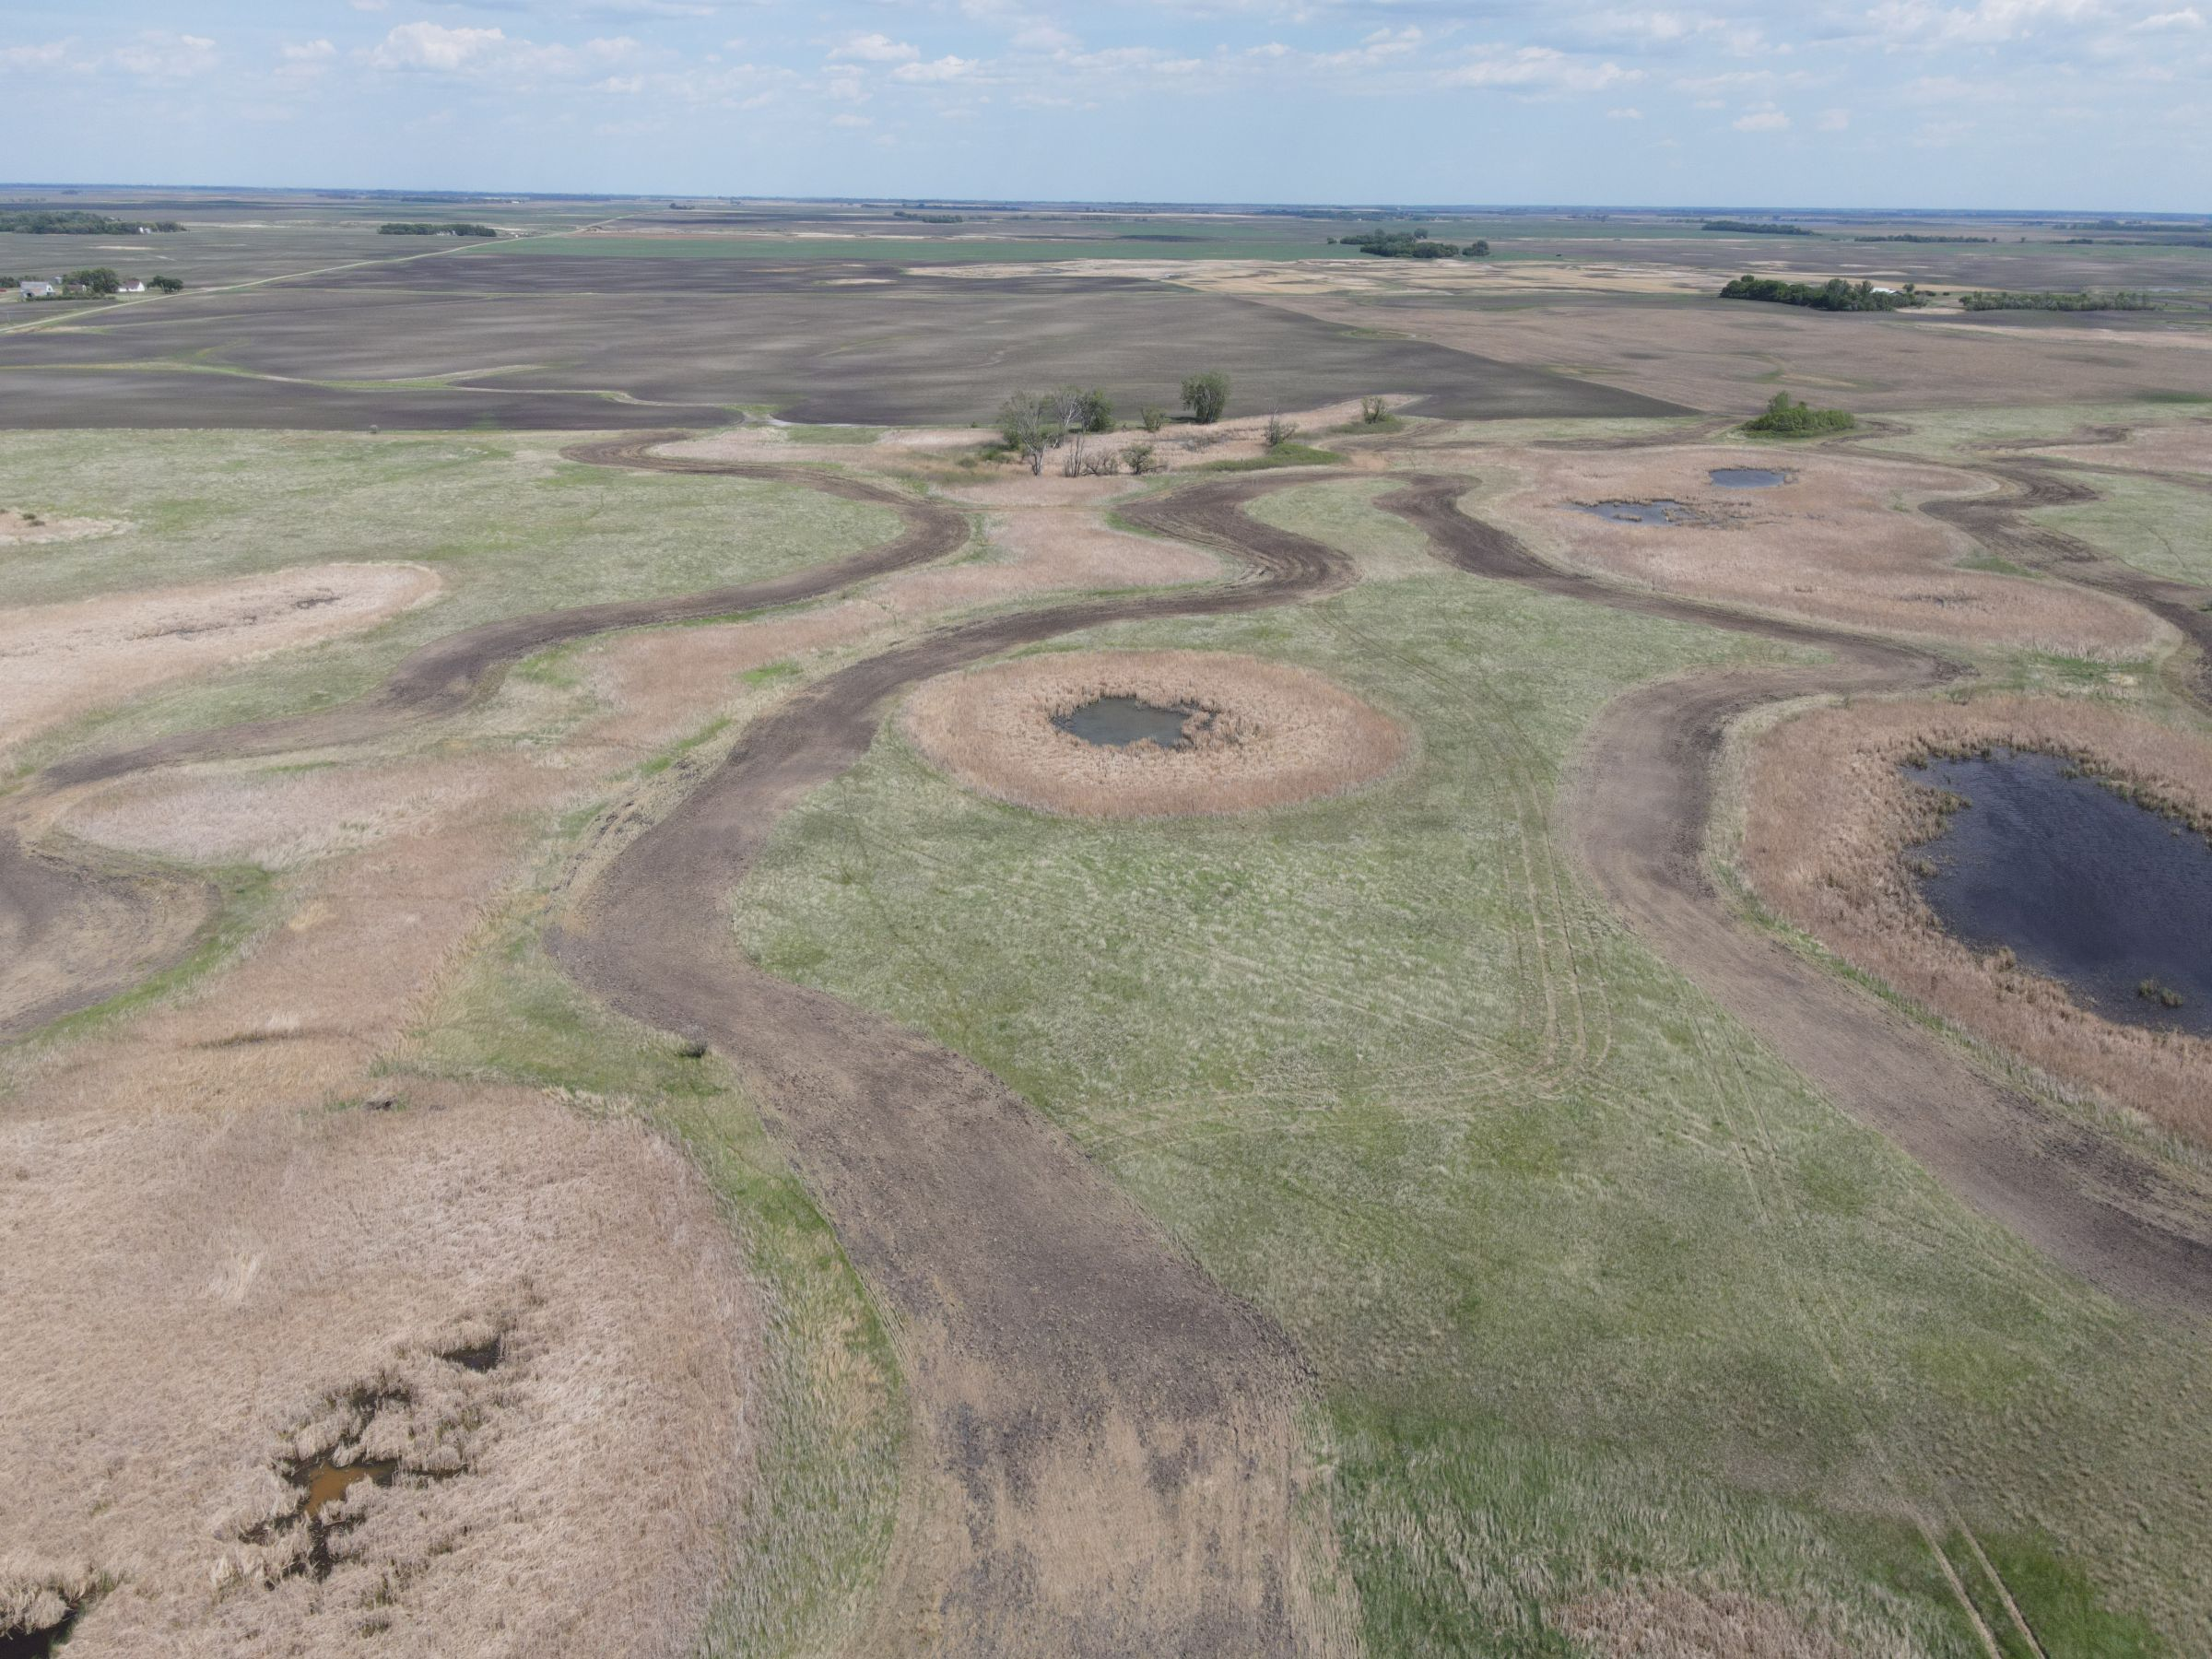 auctions-cass-county-north-dakota-320-acres-listing-number-15590-2-2021-06-22-191036.JPG